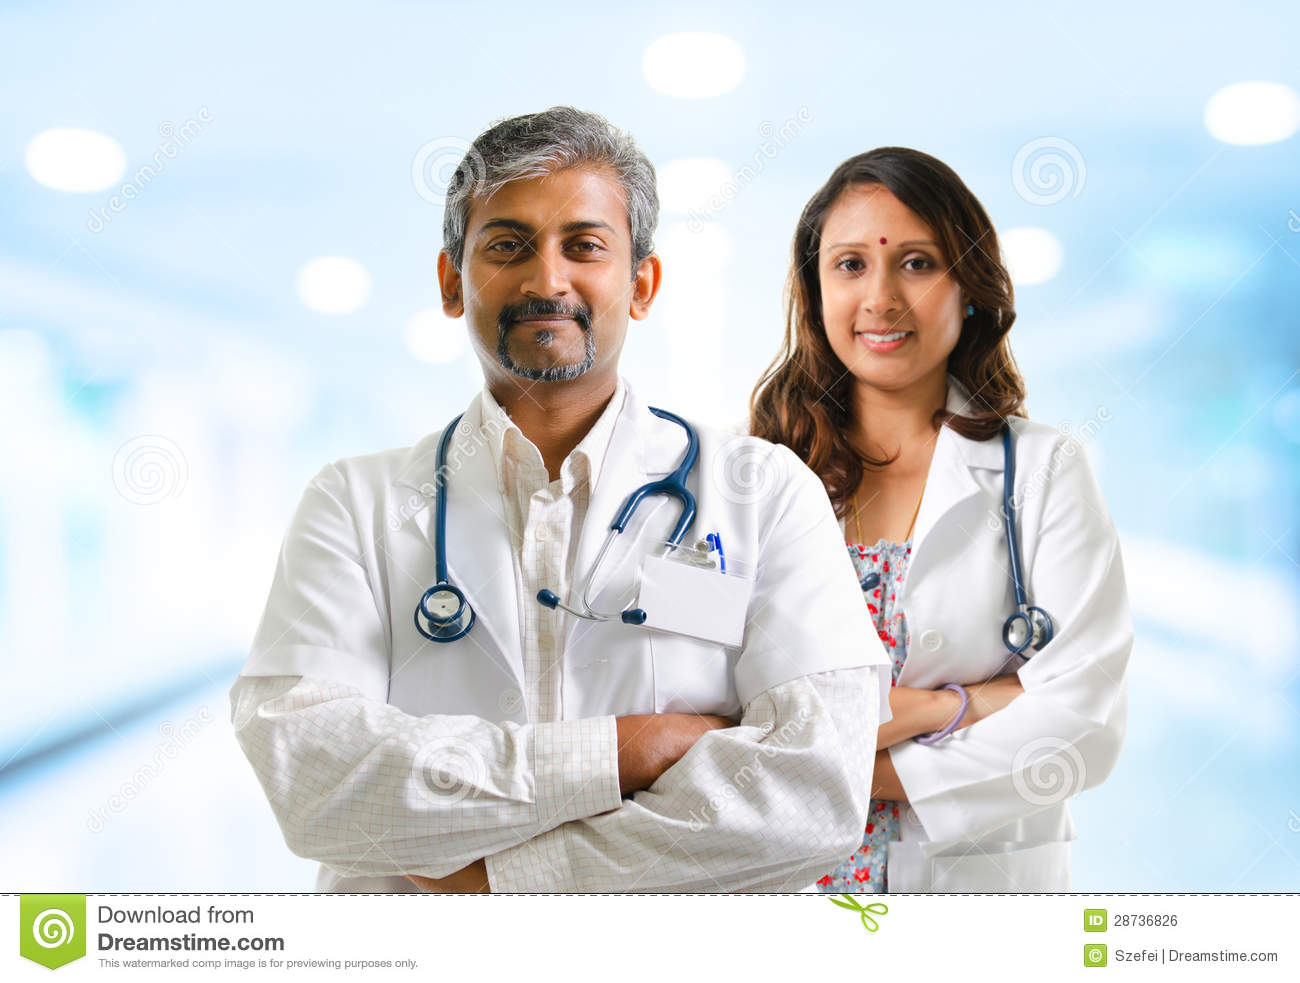 free online dating doctors Dateadaotororg - the best, largest and most successful online dating site for doctor singles or admires to find love and relationship connect with single doctors now.